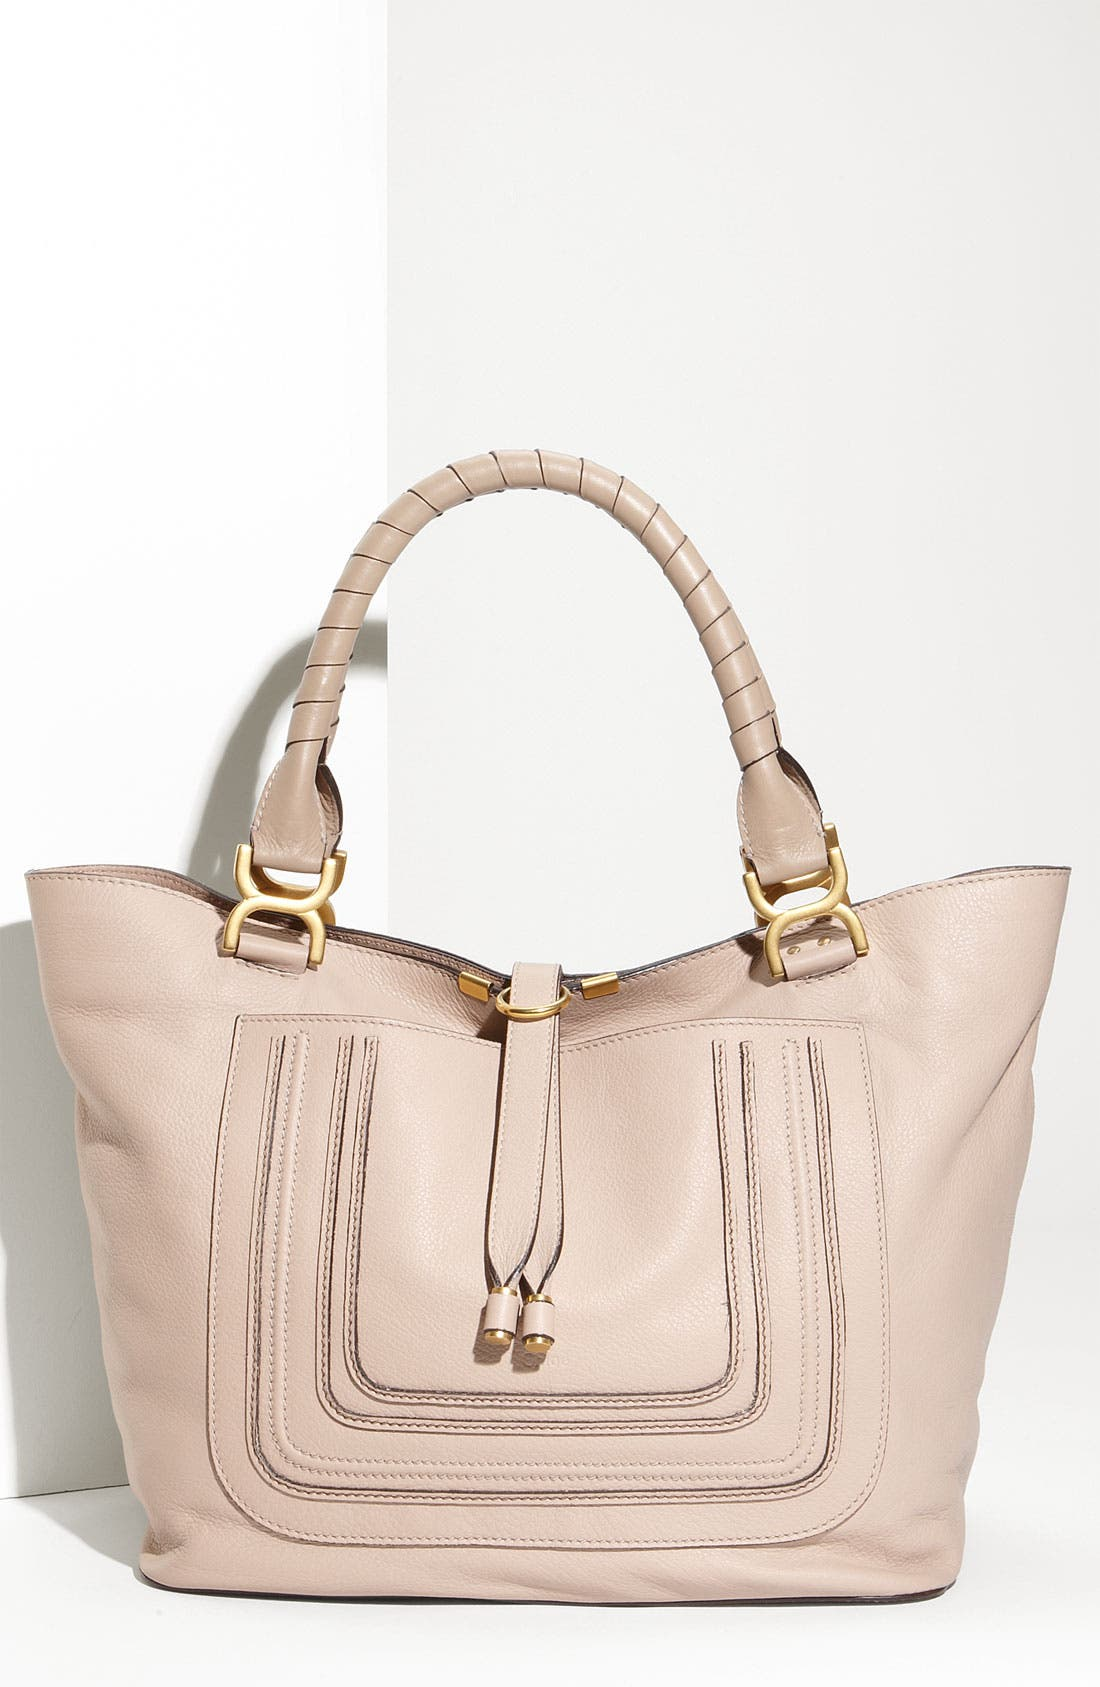 Main Image - Chloé 'Marcie - New' Leather Tote